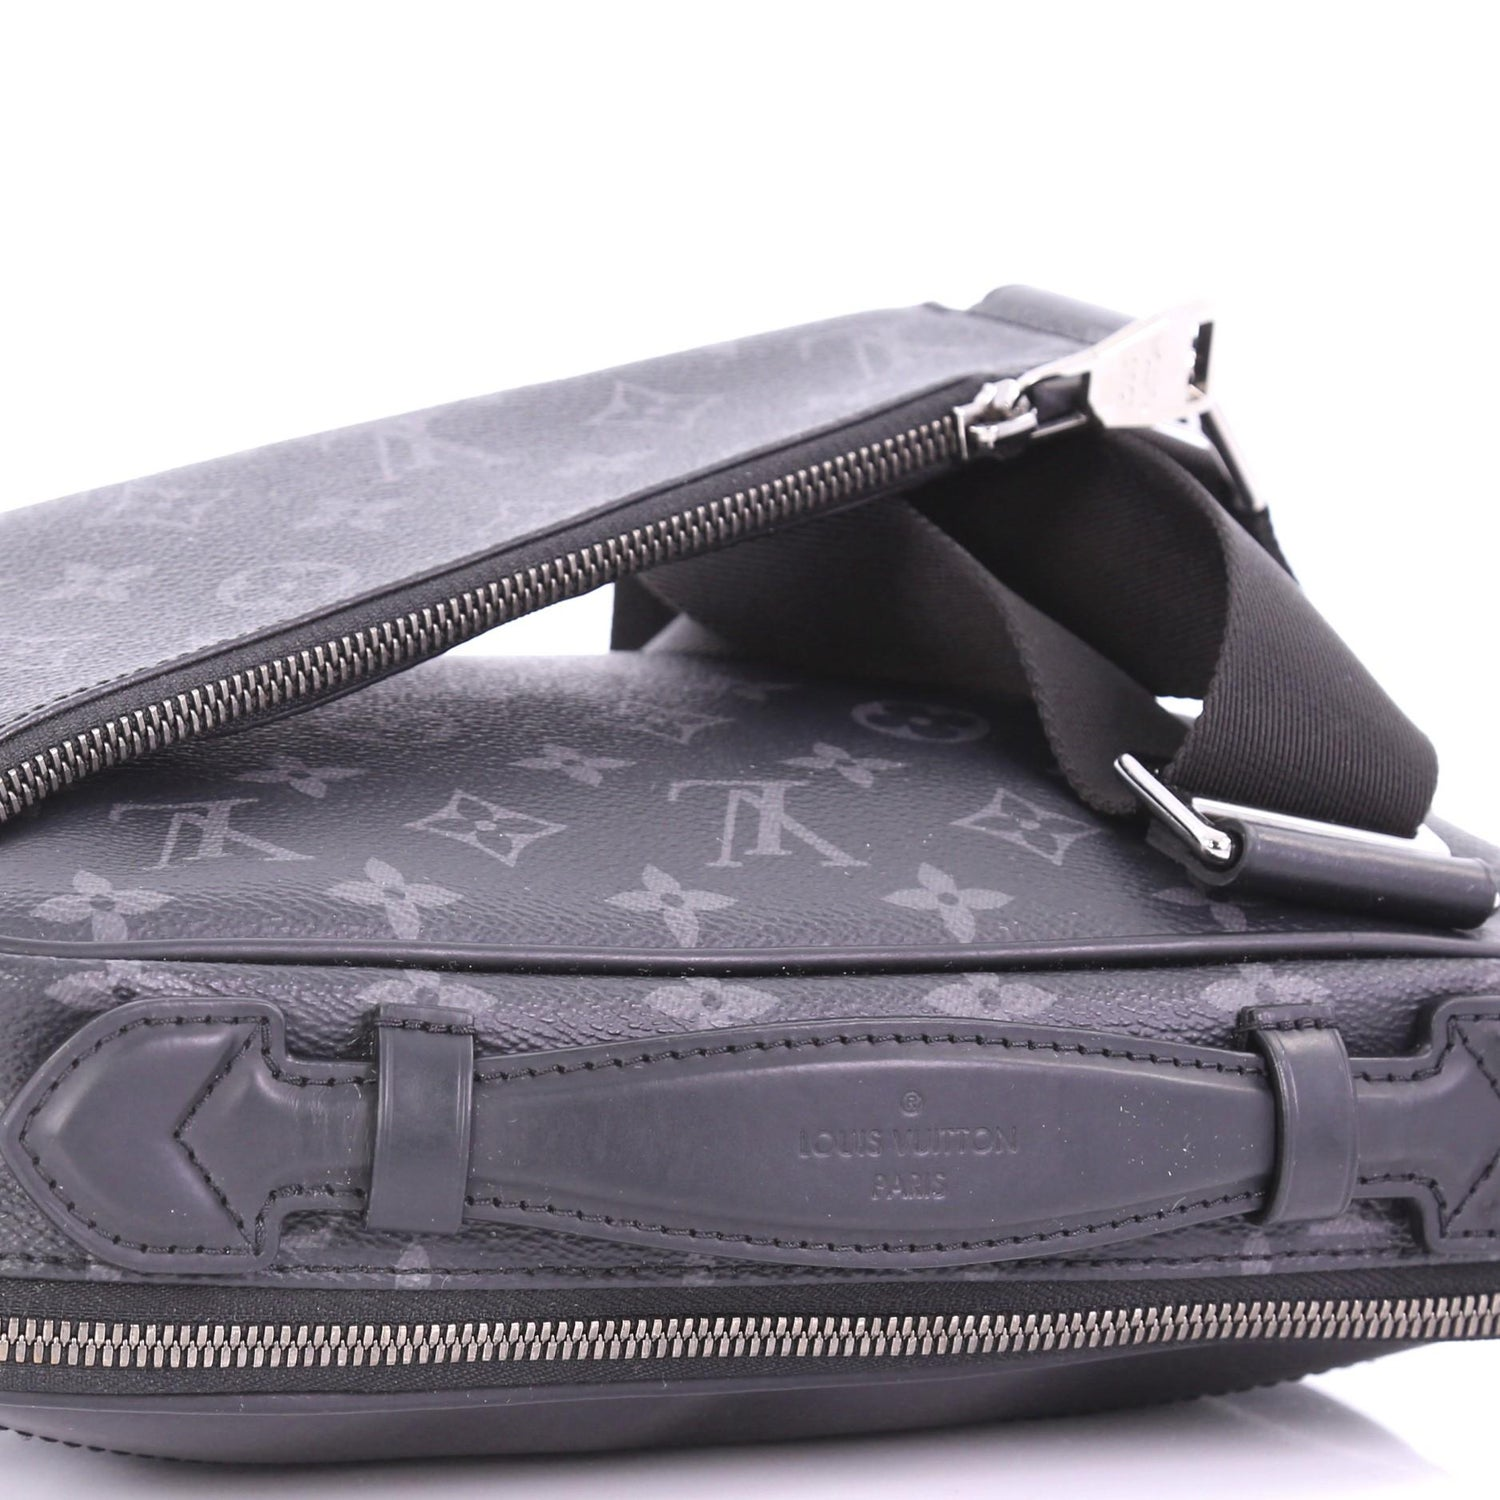 7fe7112cae40 Louis Vuitton - Men s LOUIS VUITTON Pochette Voyage clutch bag M64440 Monogram  Eclipse Flash